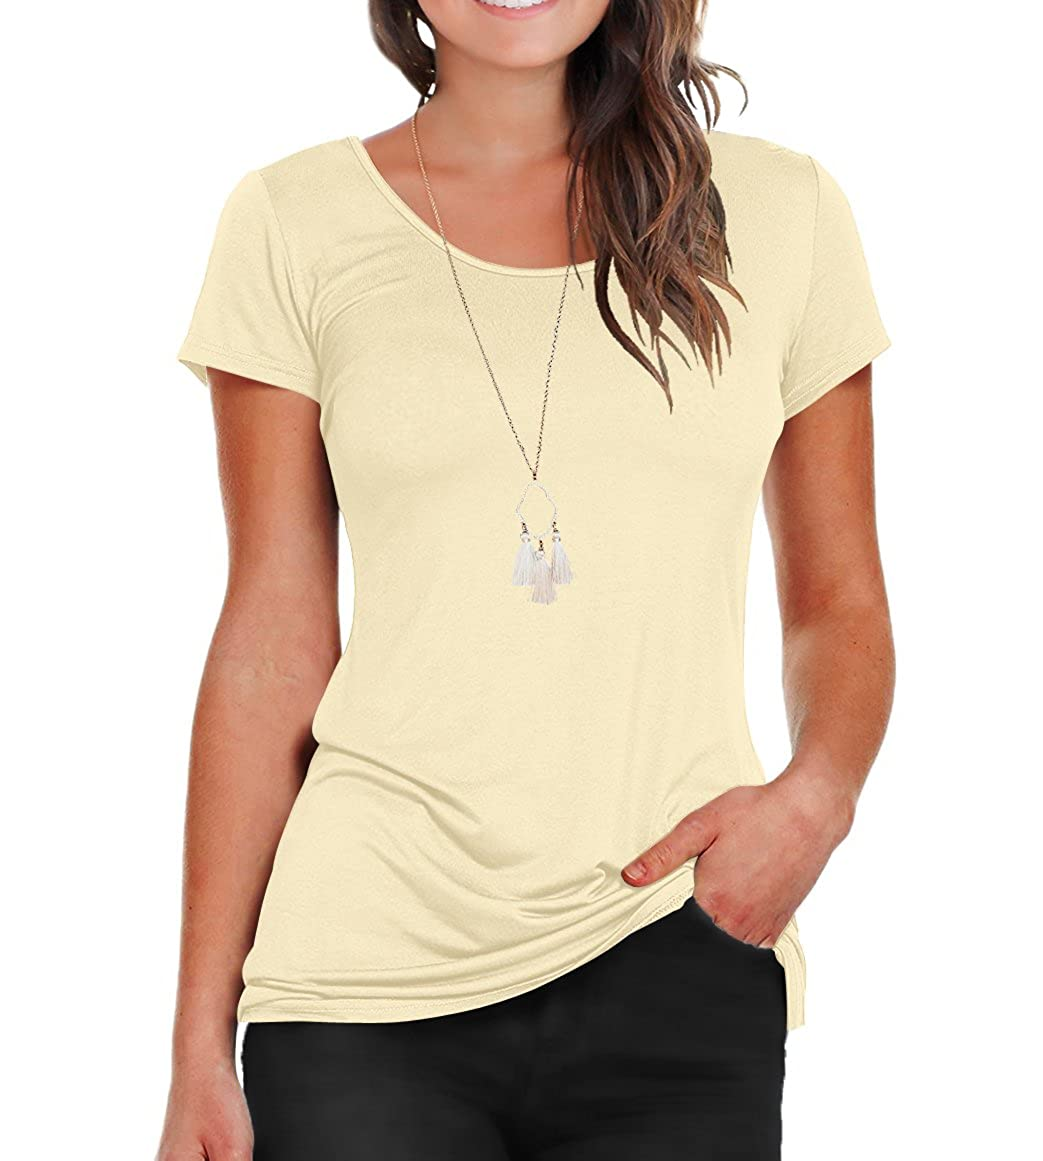 0de23fdc4ed Short rolled sleeves, scoop neck, slim fit design, casual tees can being an  undershirts also. Fabric is slightly sheer. Match with tank tops,camisole  or ...